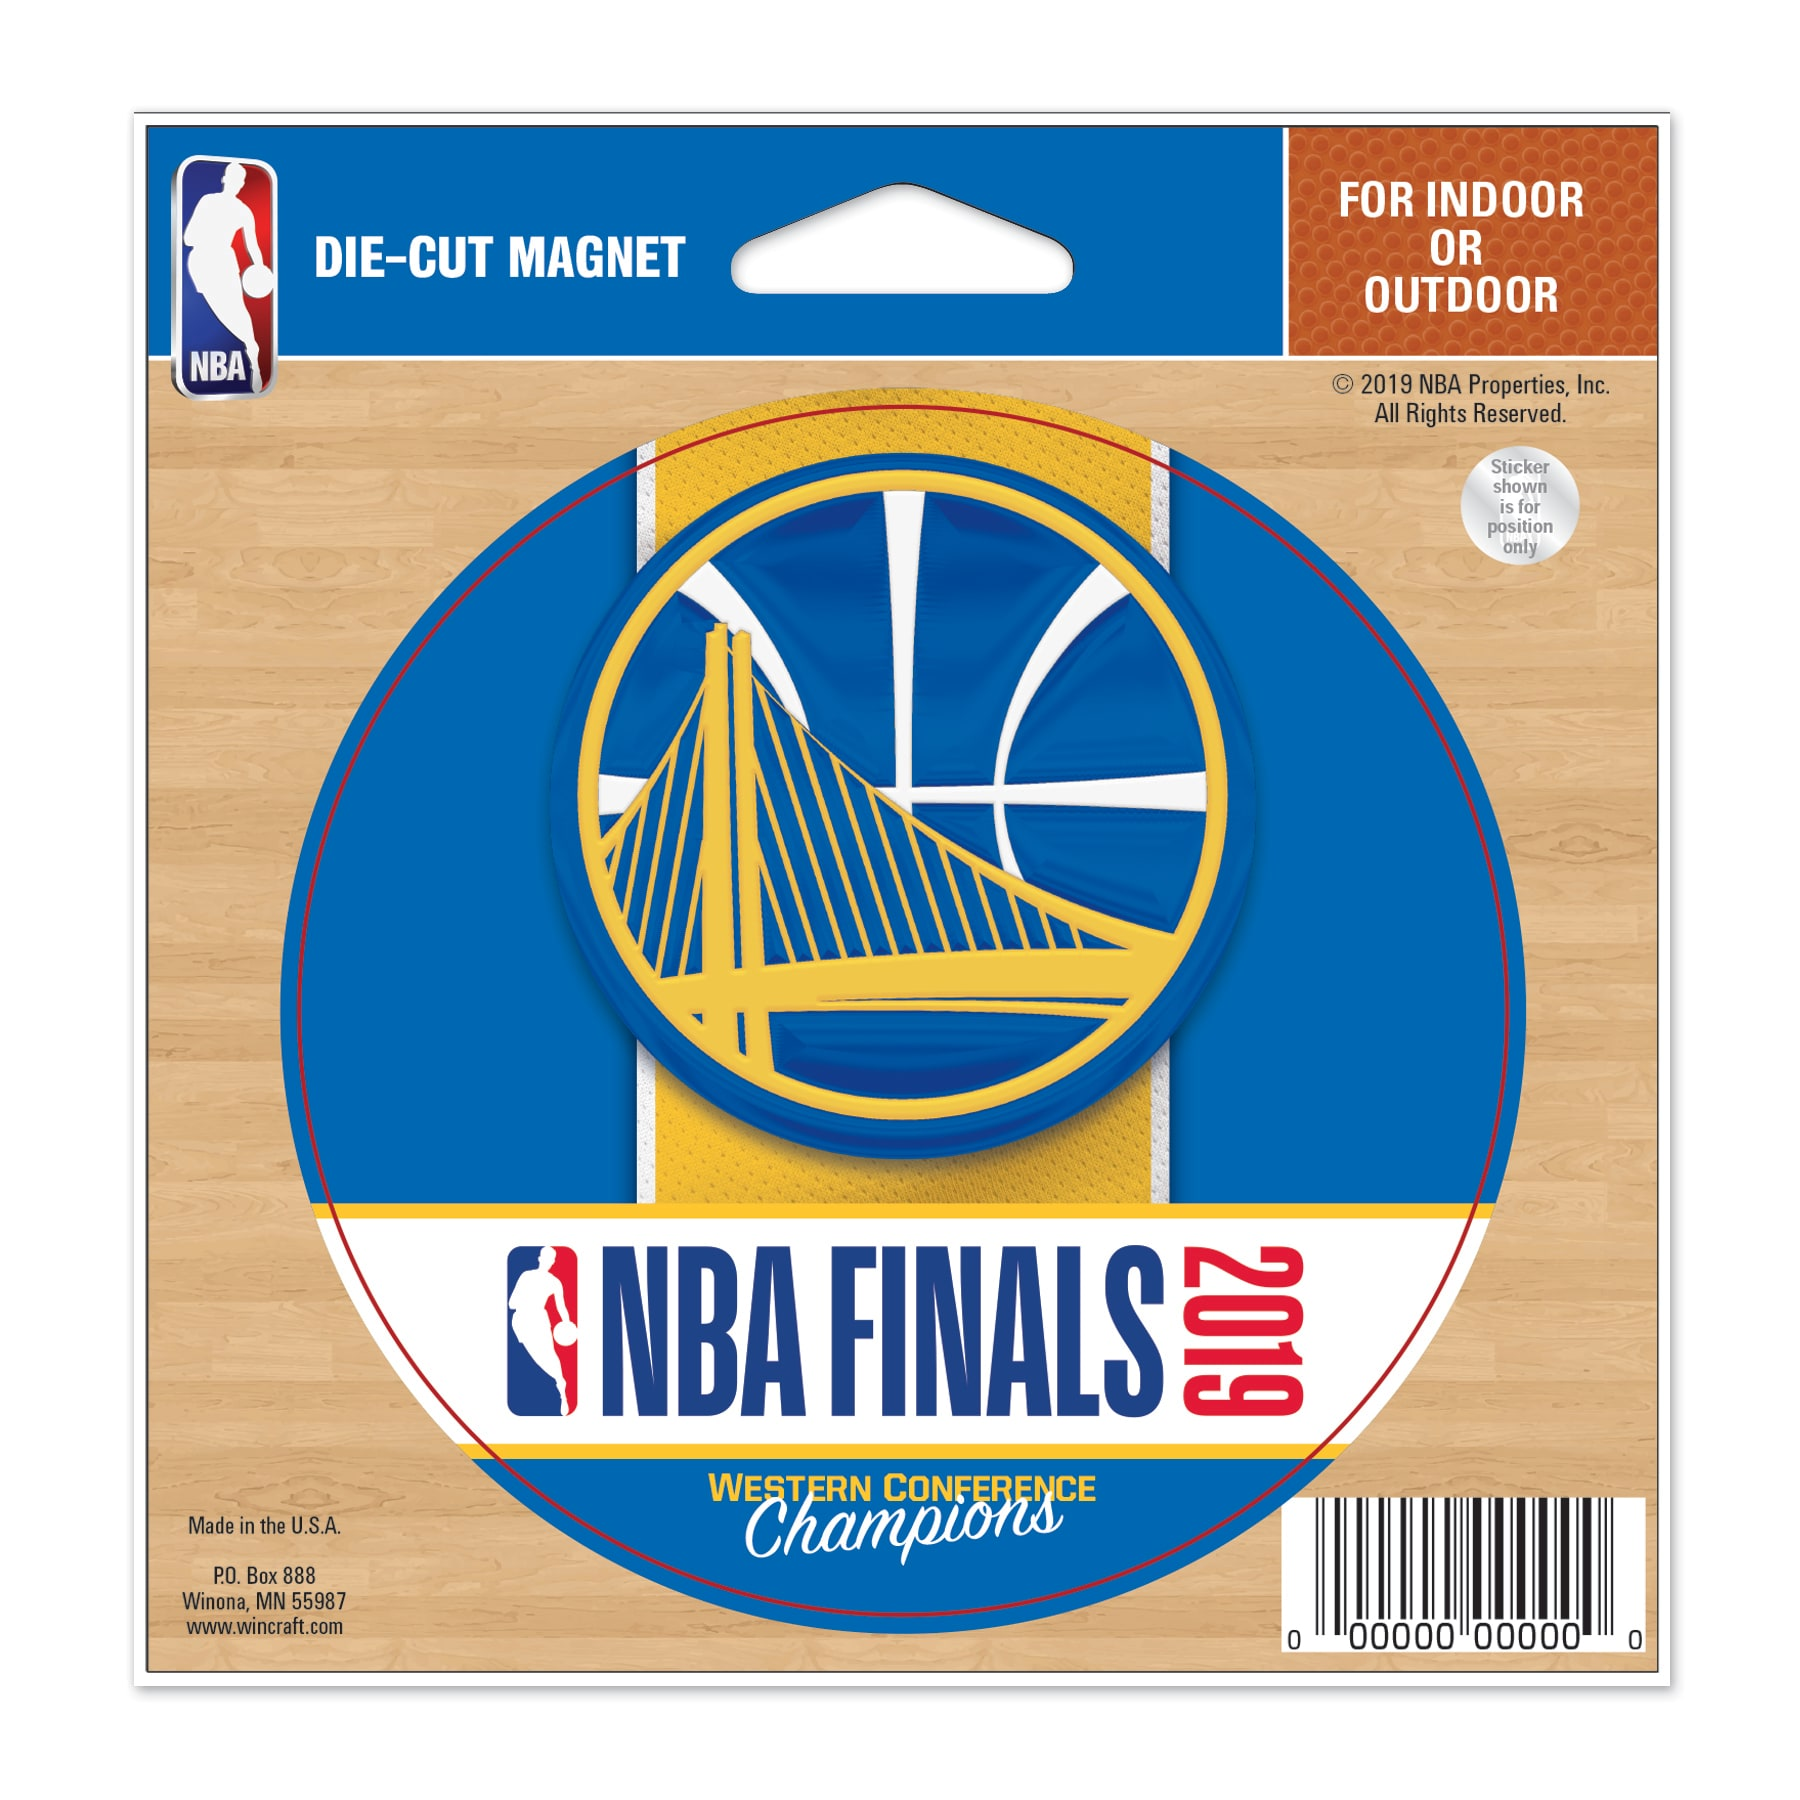 Golden State Warriors WinCraft 2019 Western Conference Champions 4.5'' x 6'' Indoor/Outdoor Magnet